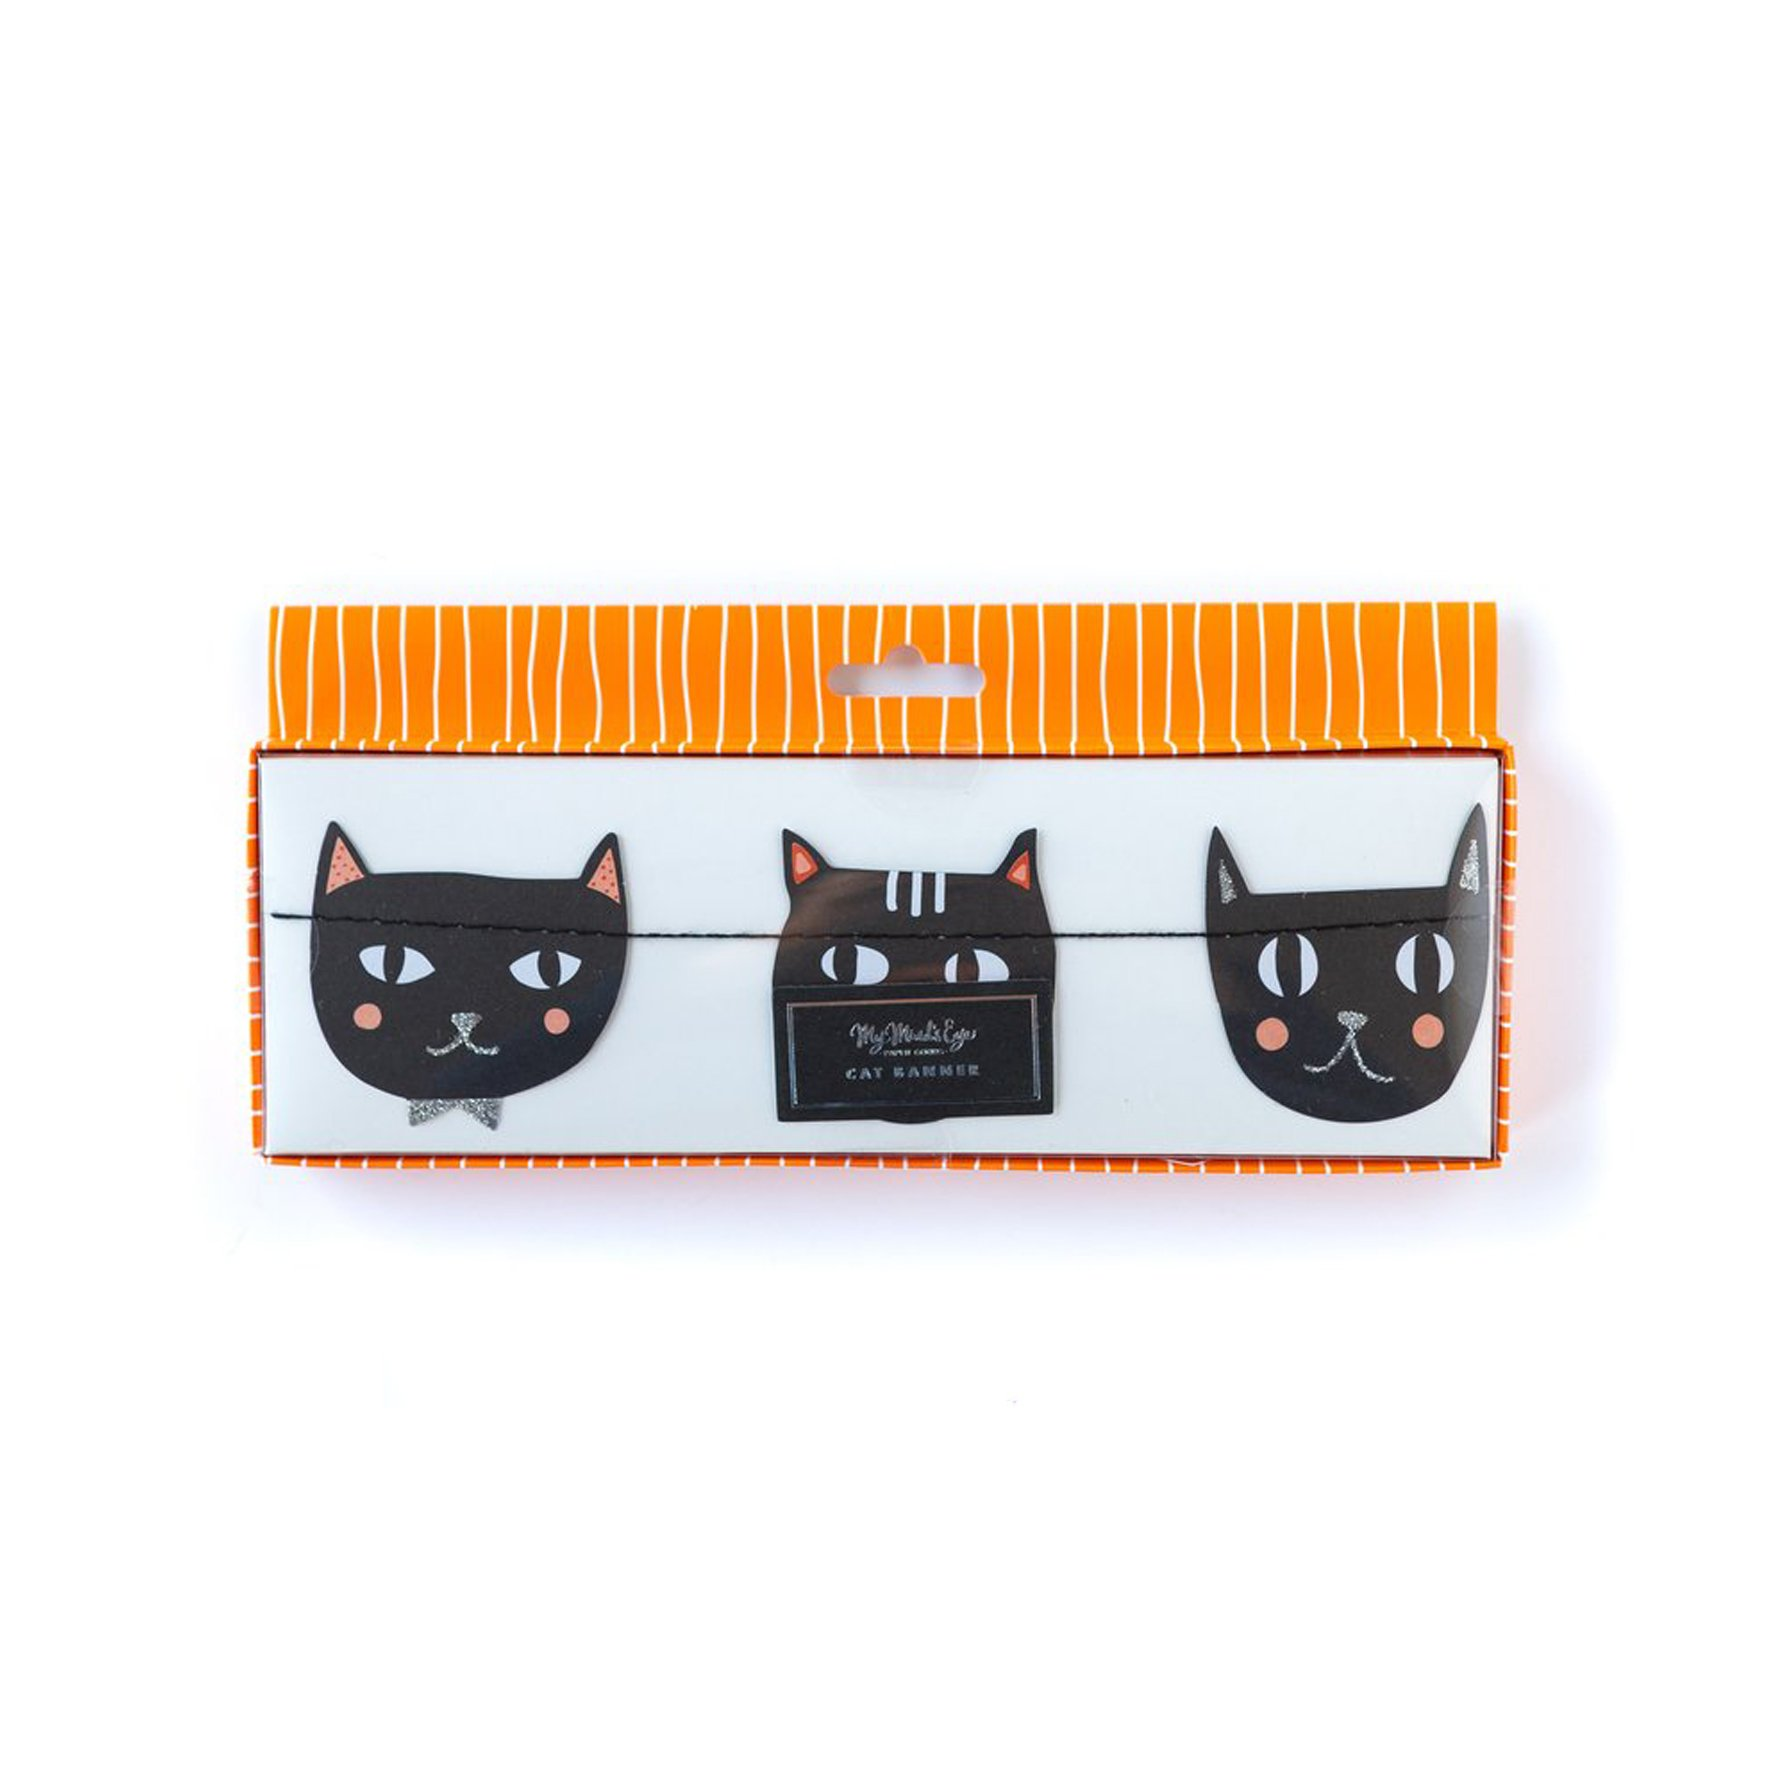 BUY ME / NEW ITEM $12.99 each Halloween Black Cat 6ft Paper Garland